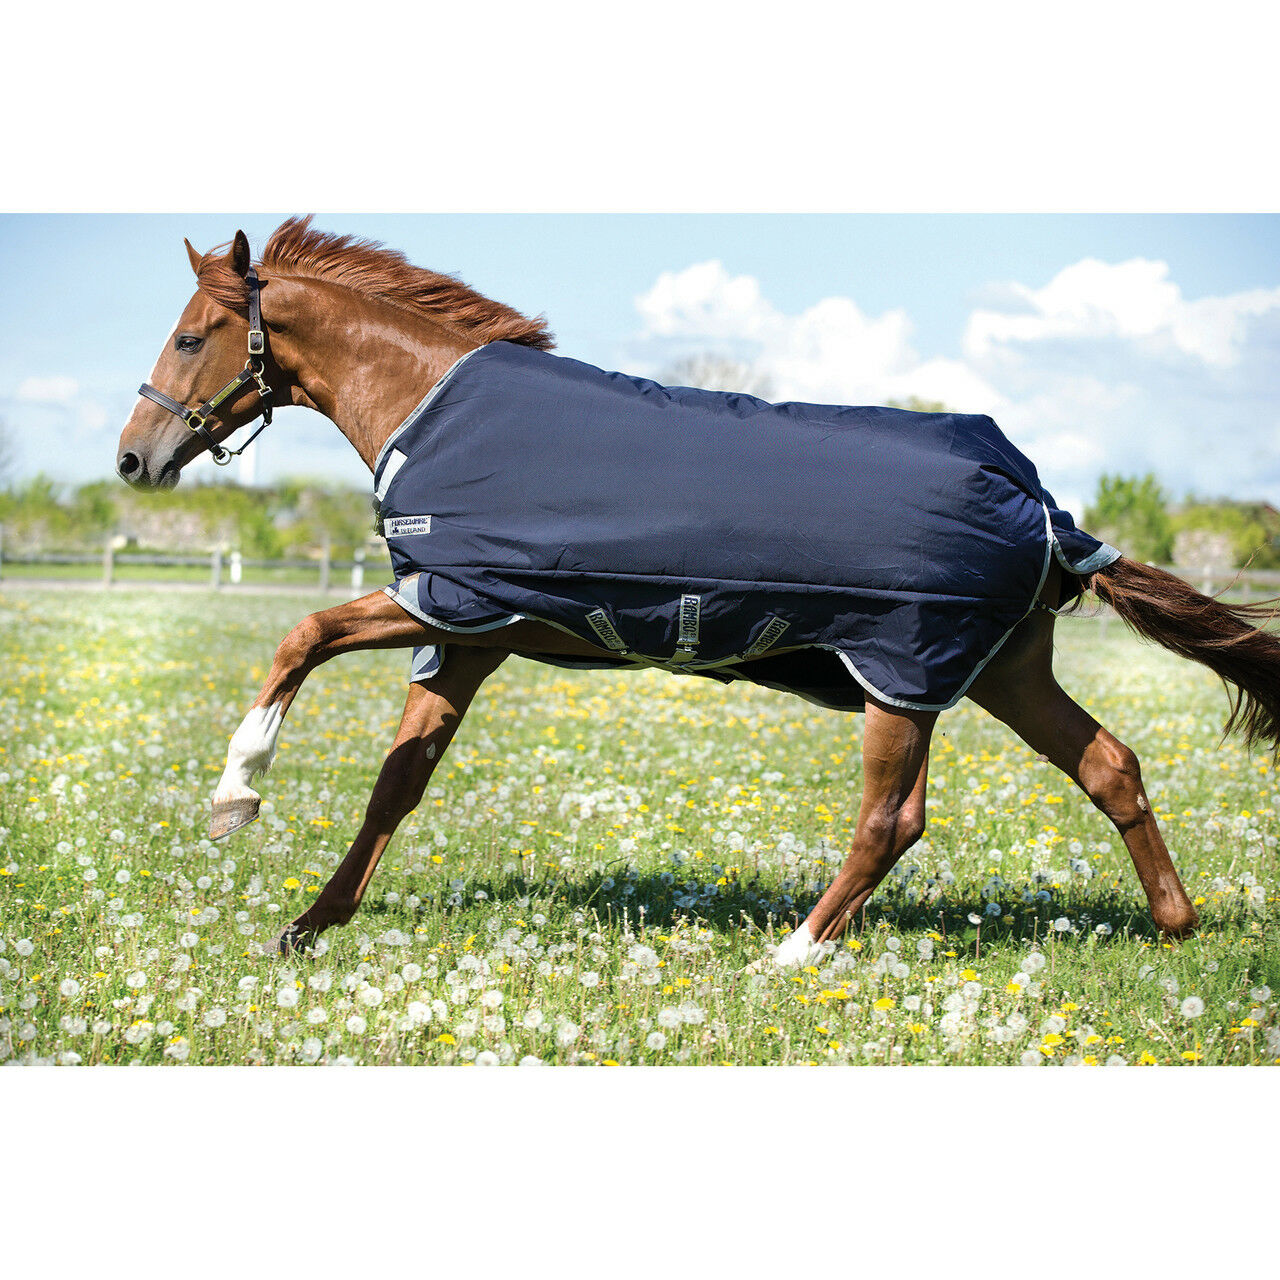 Rambo Medium Original Turnout Blanket with Leg Arches (200g) - Navy - Diff Sizes